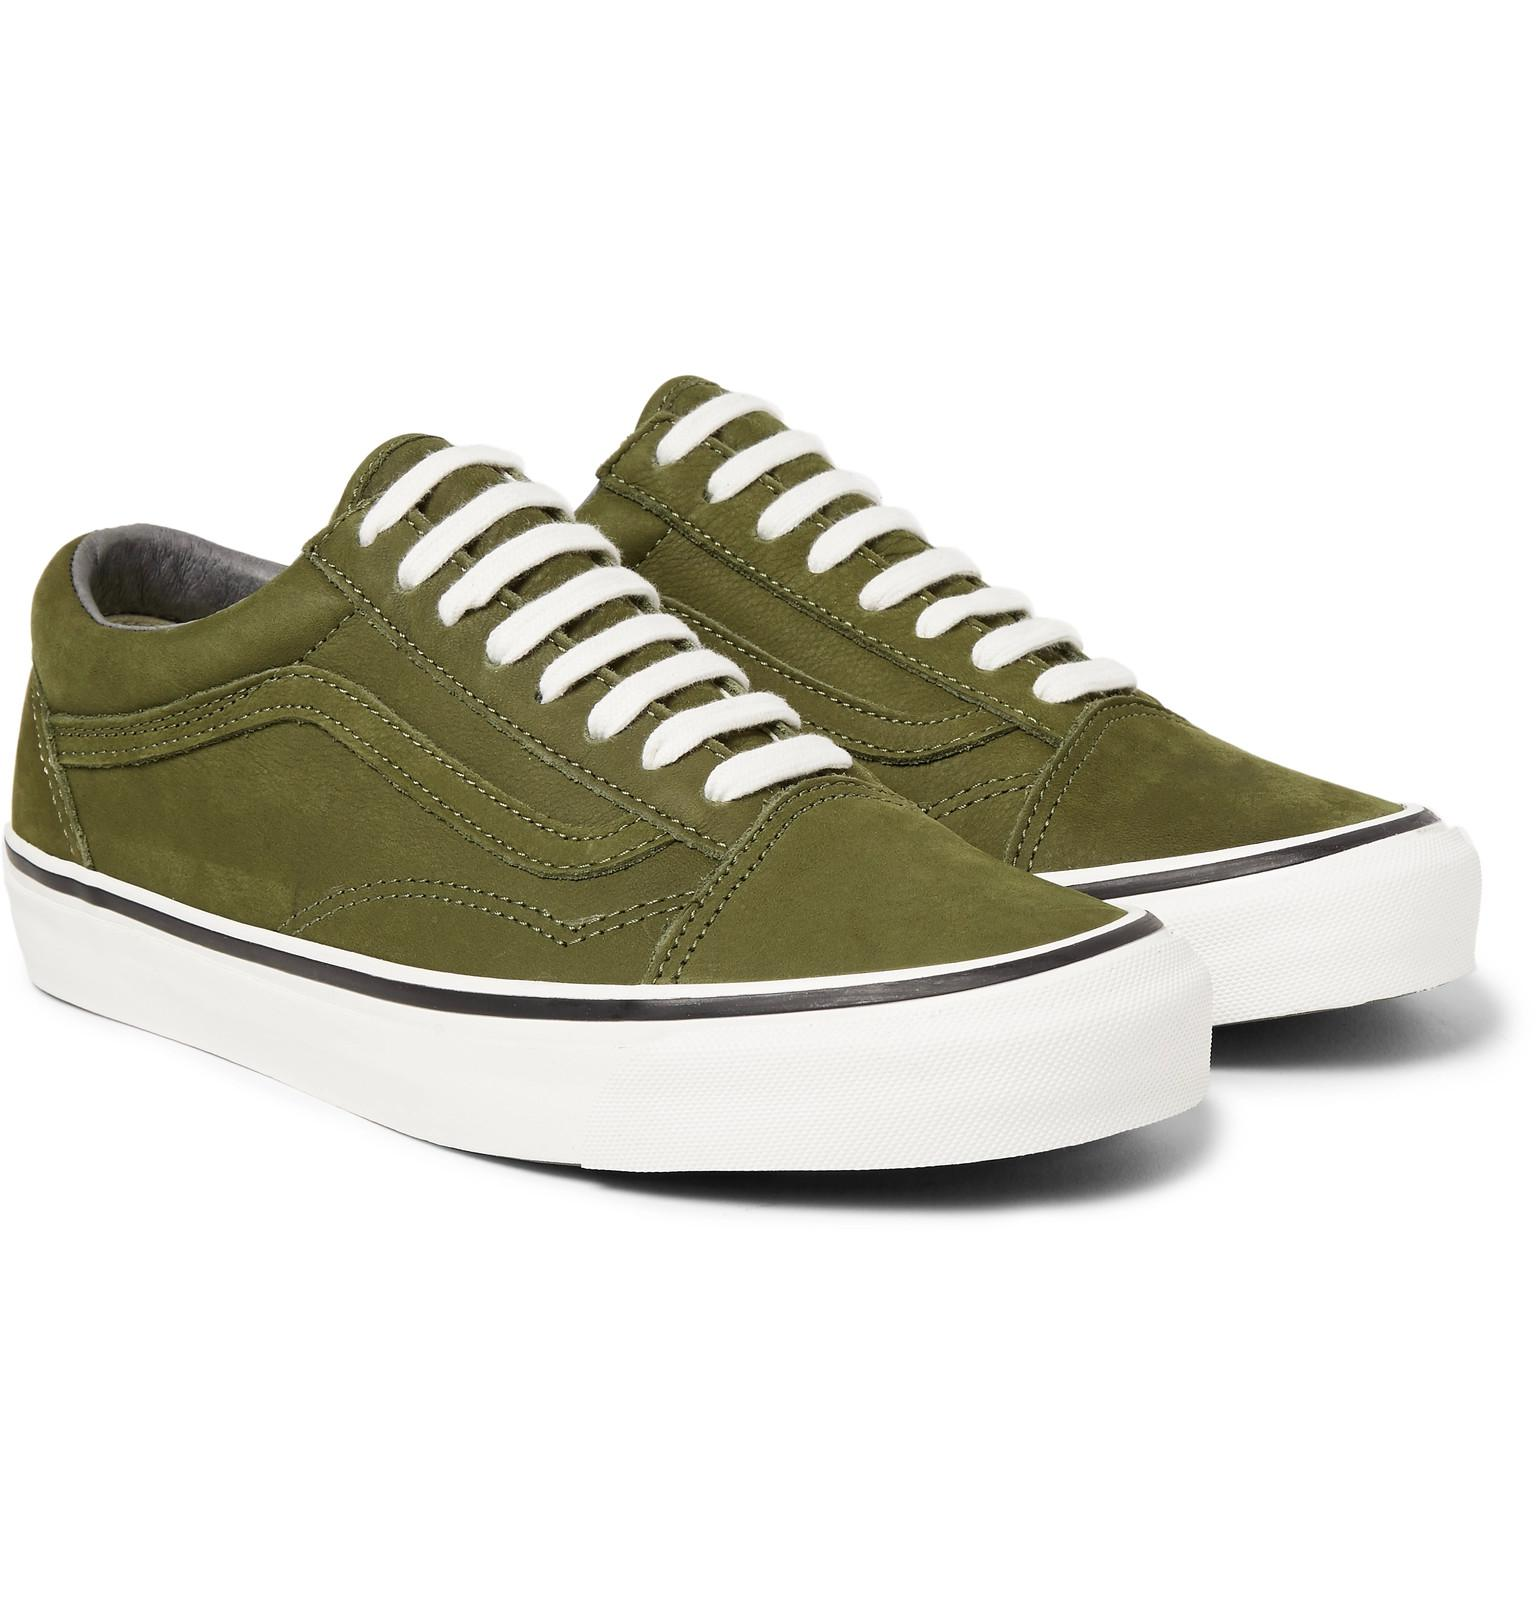 abac75a04e1a59 ... Cress Green True White End. Lyst Vans Og Old Skool Lx Nubuck Sneakers  In Green For Men